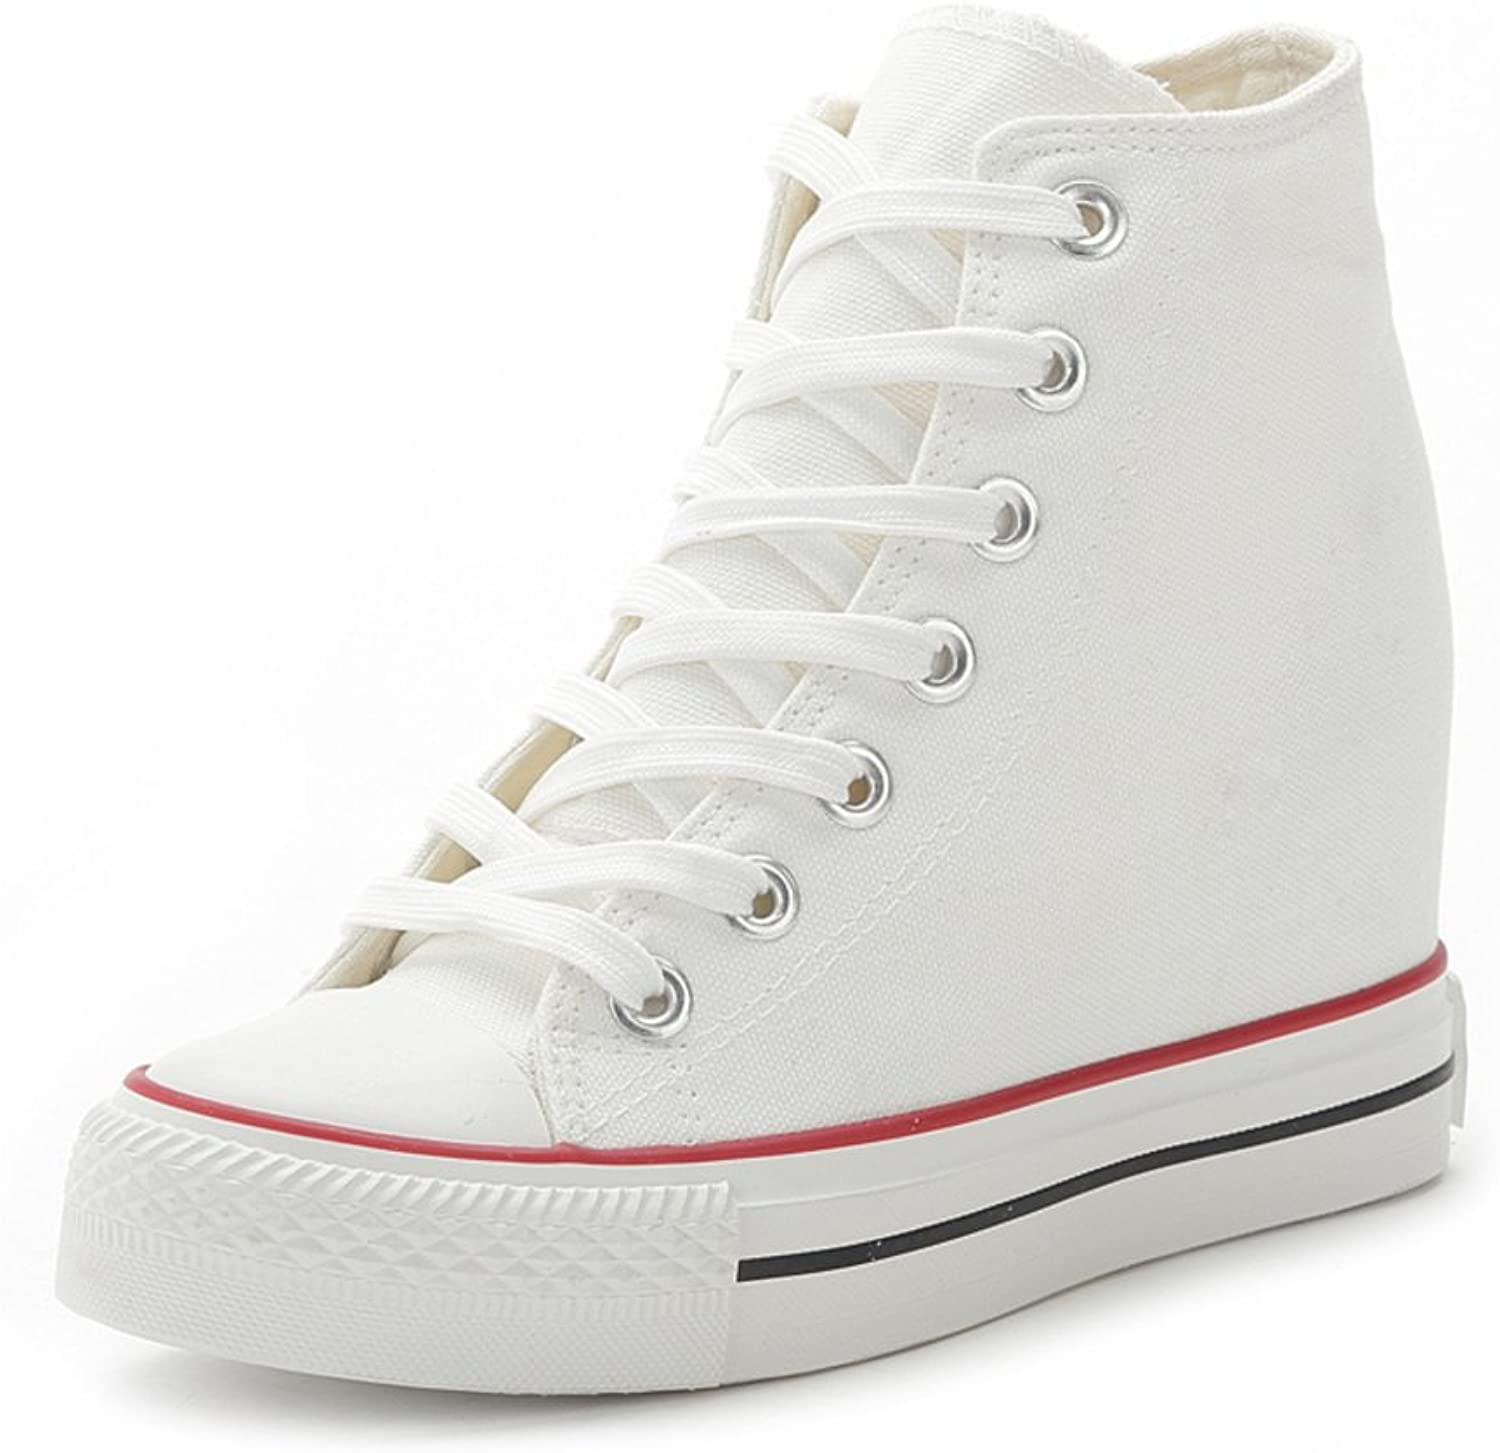 High canvas shoes Ms. wild casual high-top shoes